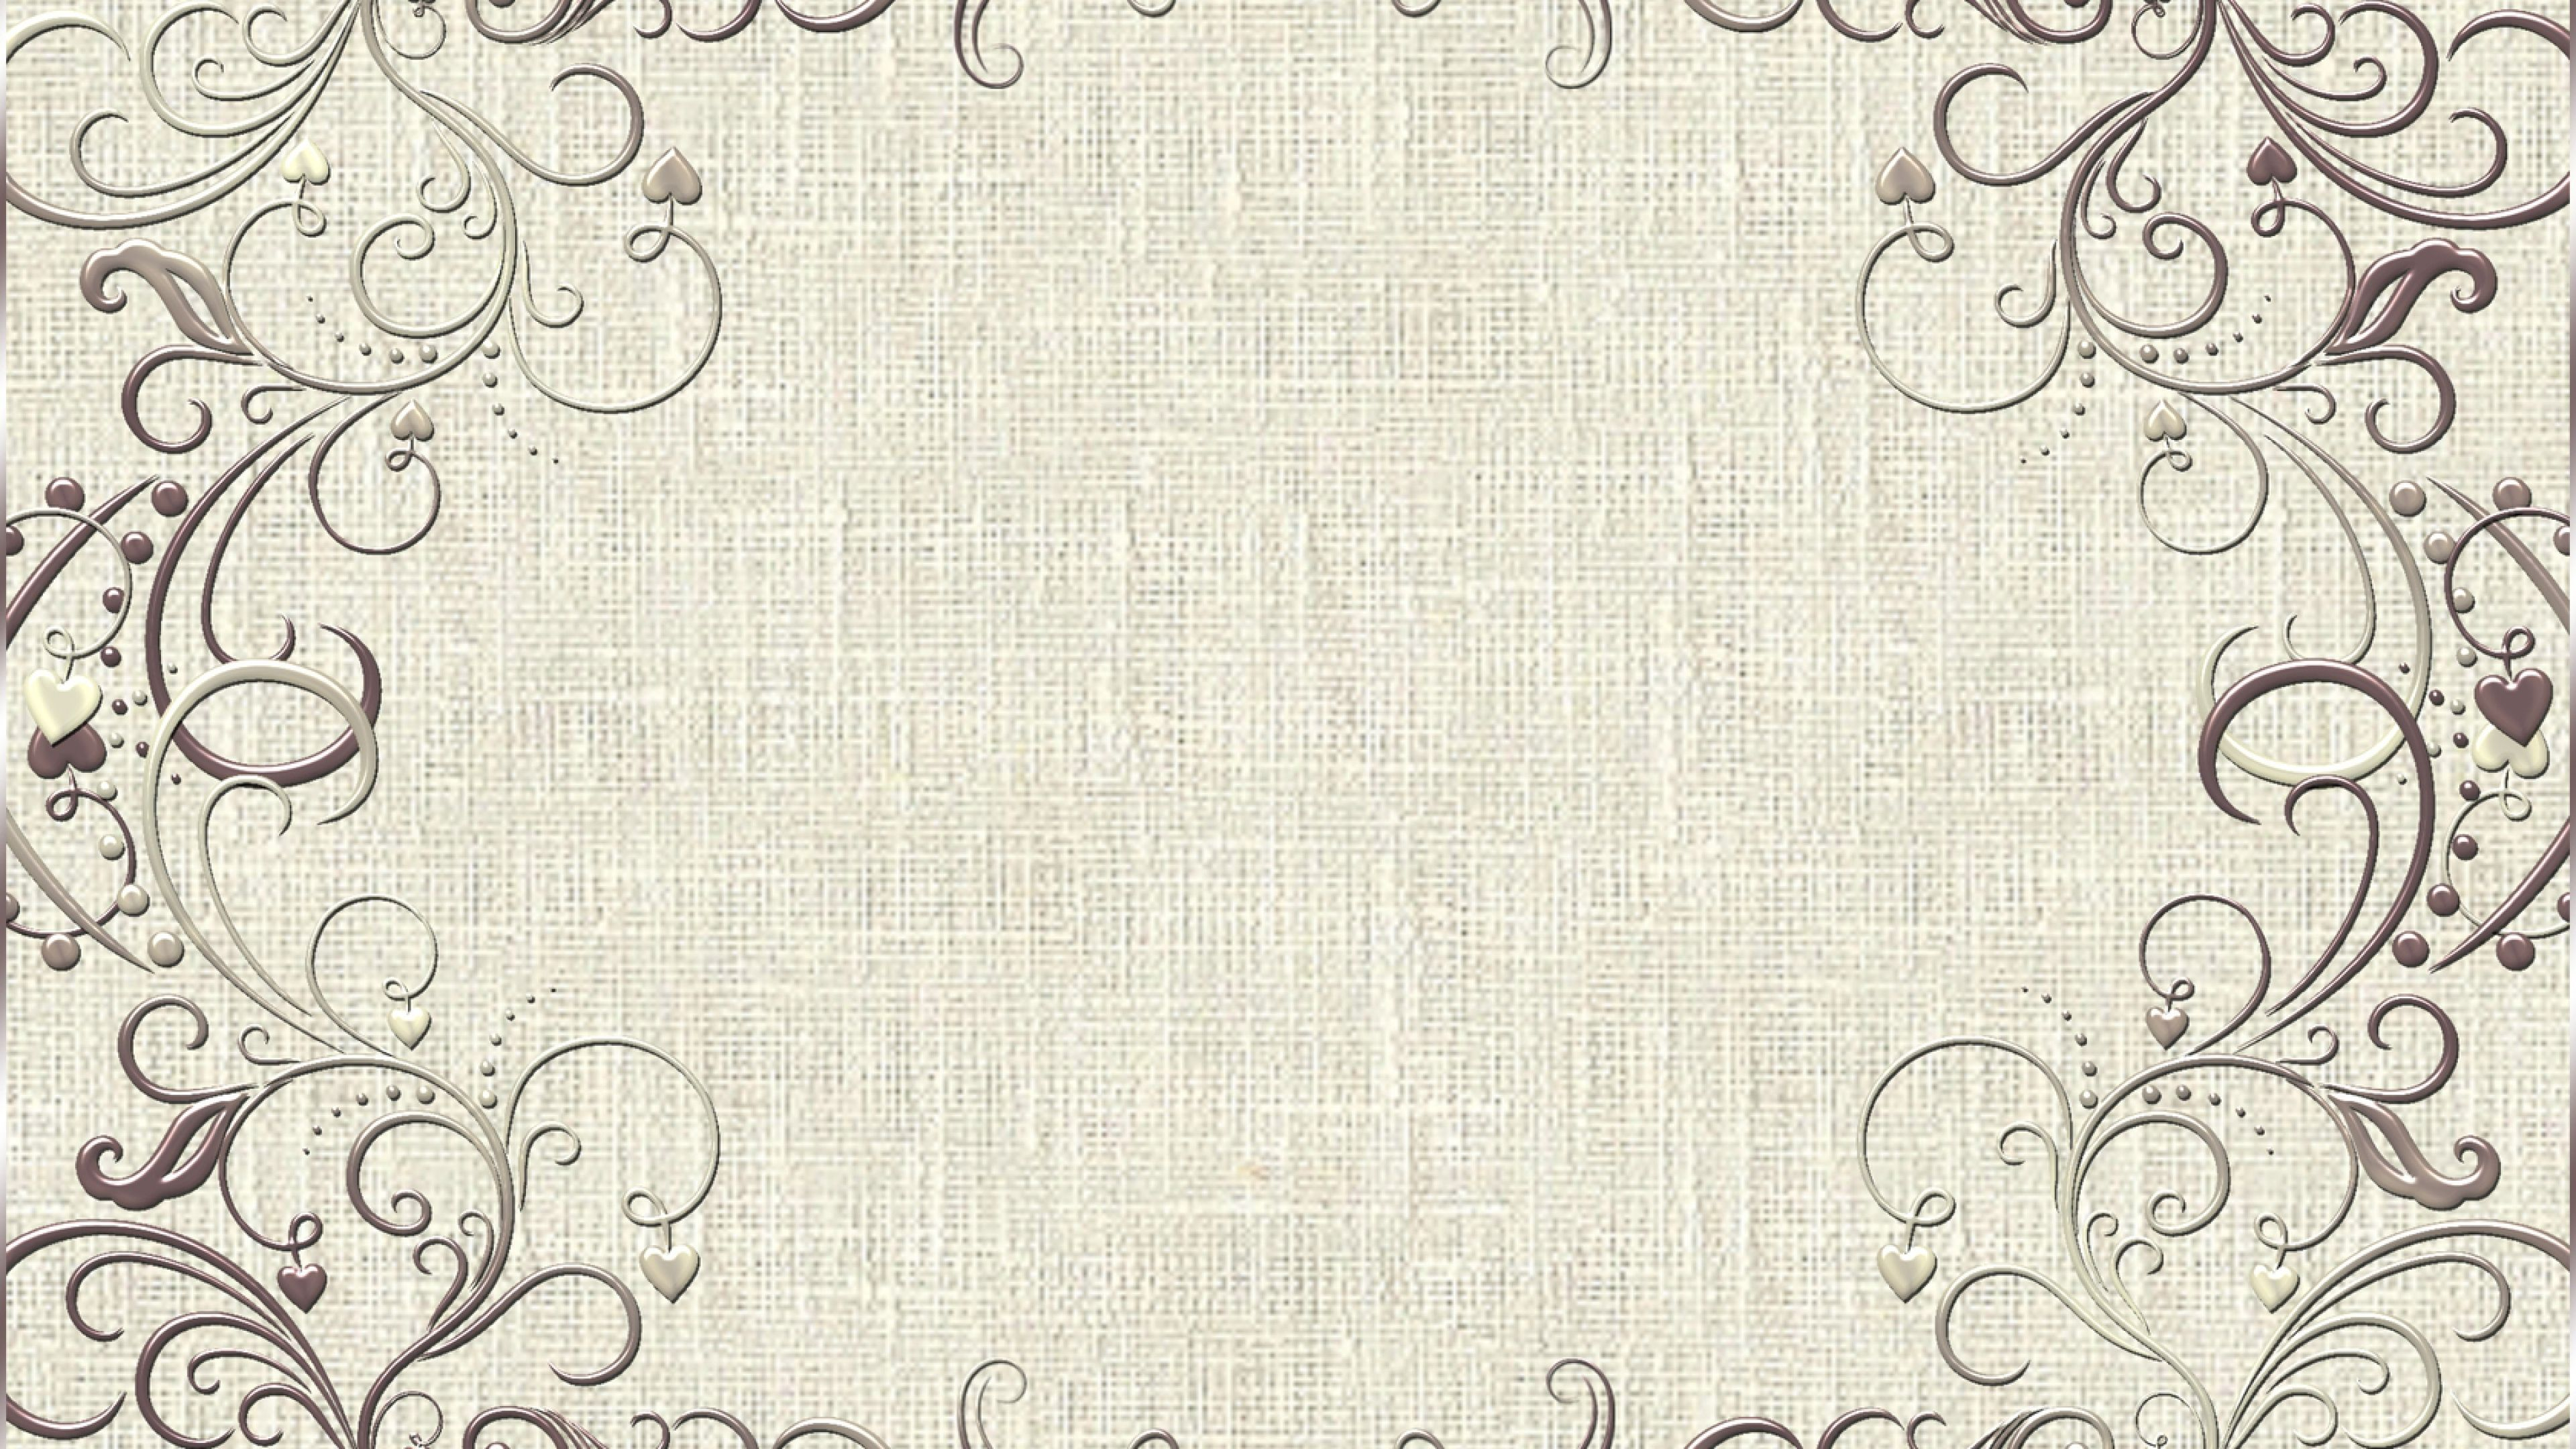 Fabric Design Vintage Pattern Frame WallpapersByte com 3840x2160 3840x2160